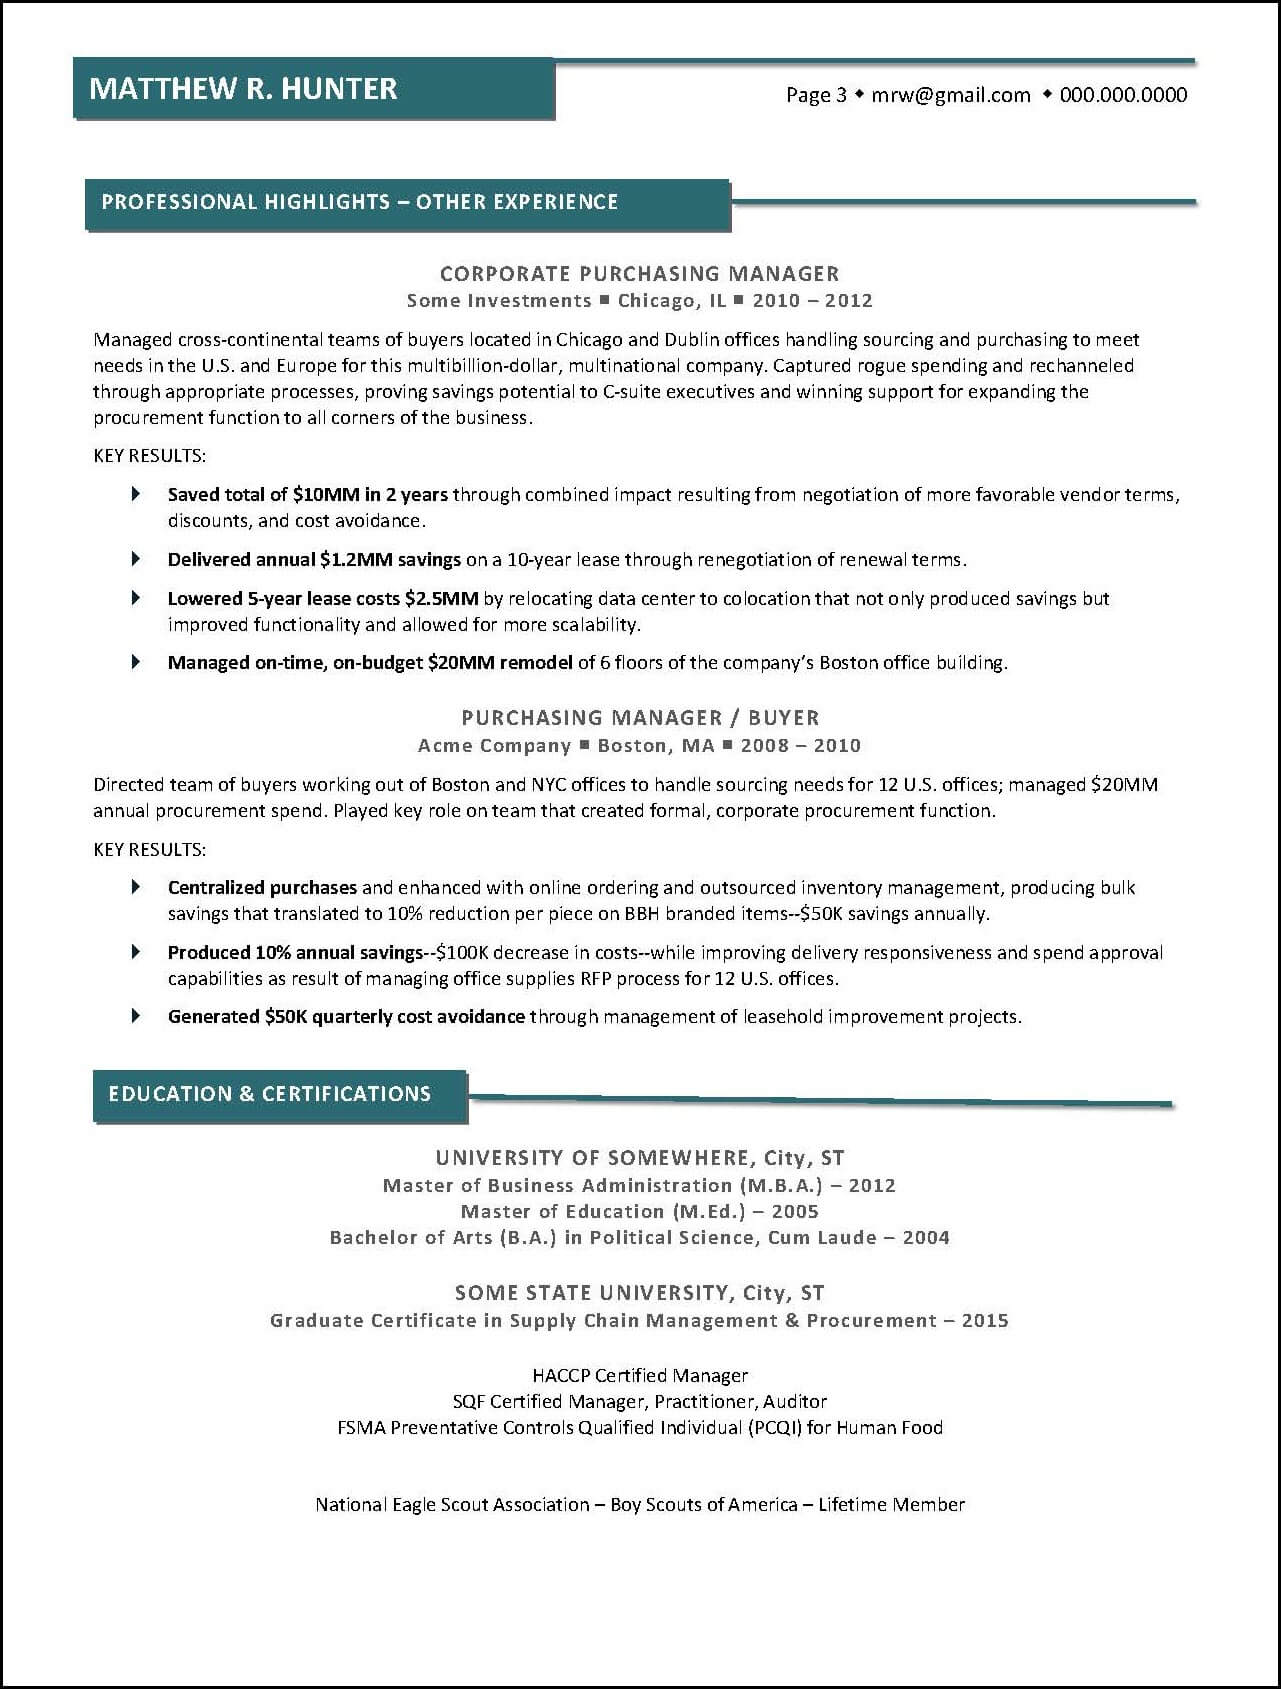 Example Executive Resume Diverse Career Page 3